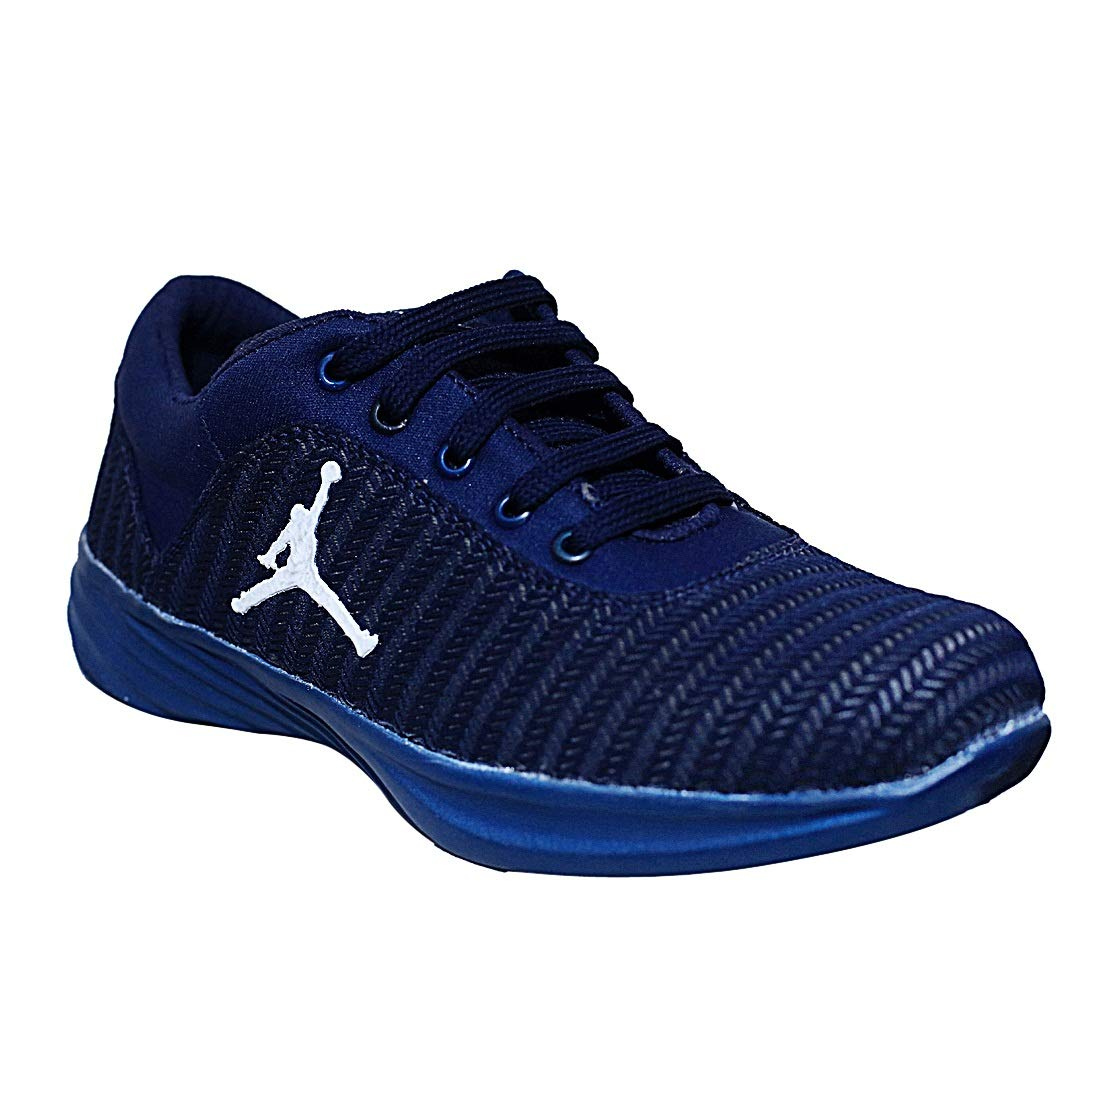 adf6dc2733cb Foot Locker Blue Sneaker  Buy Online at Low Prices in India - Amazon.in